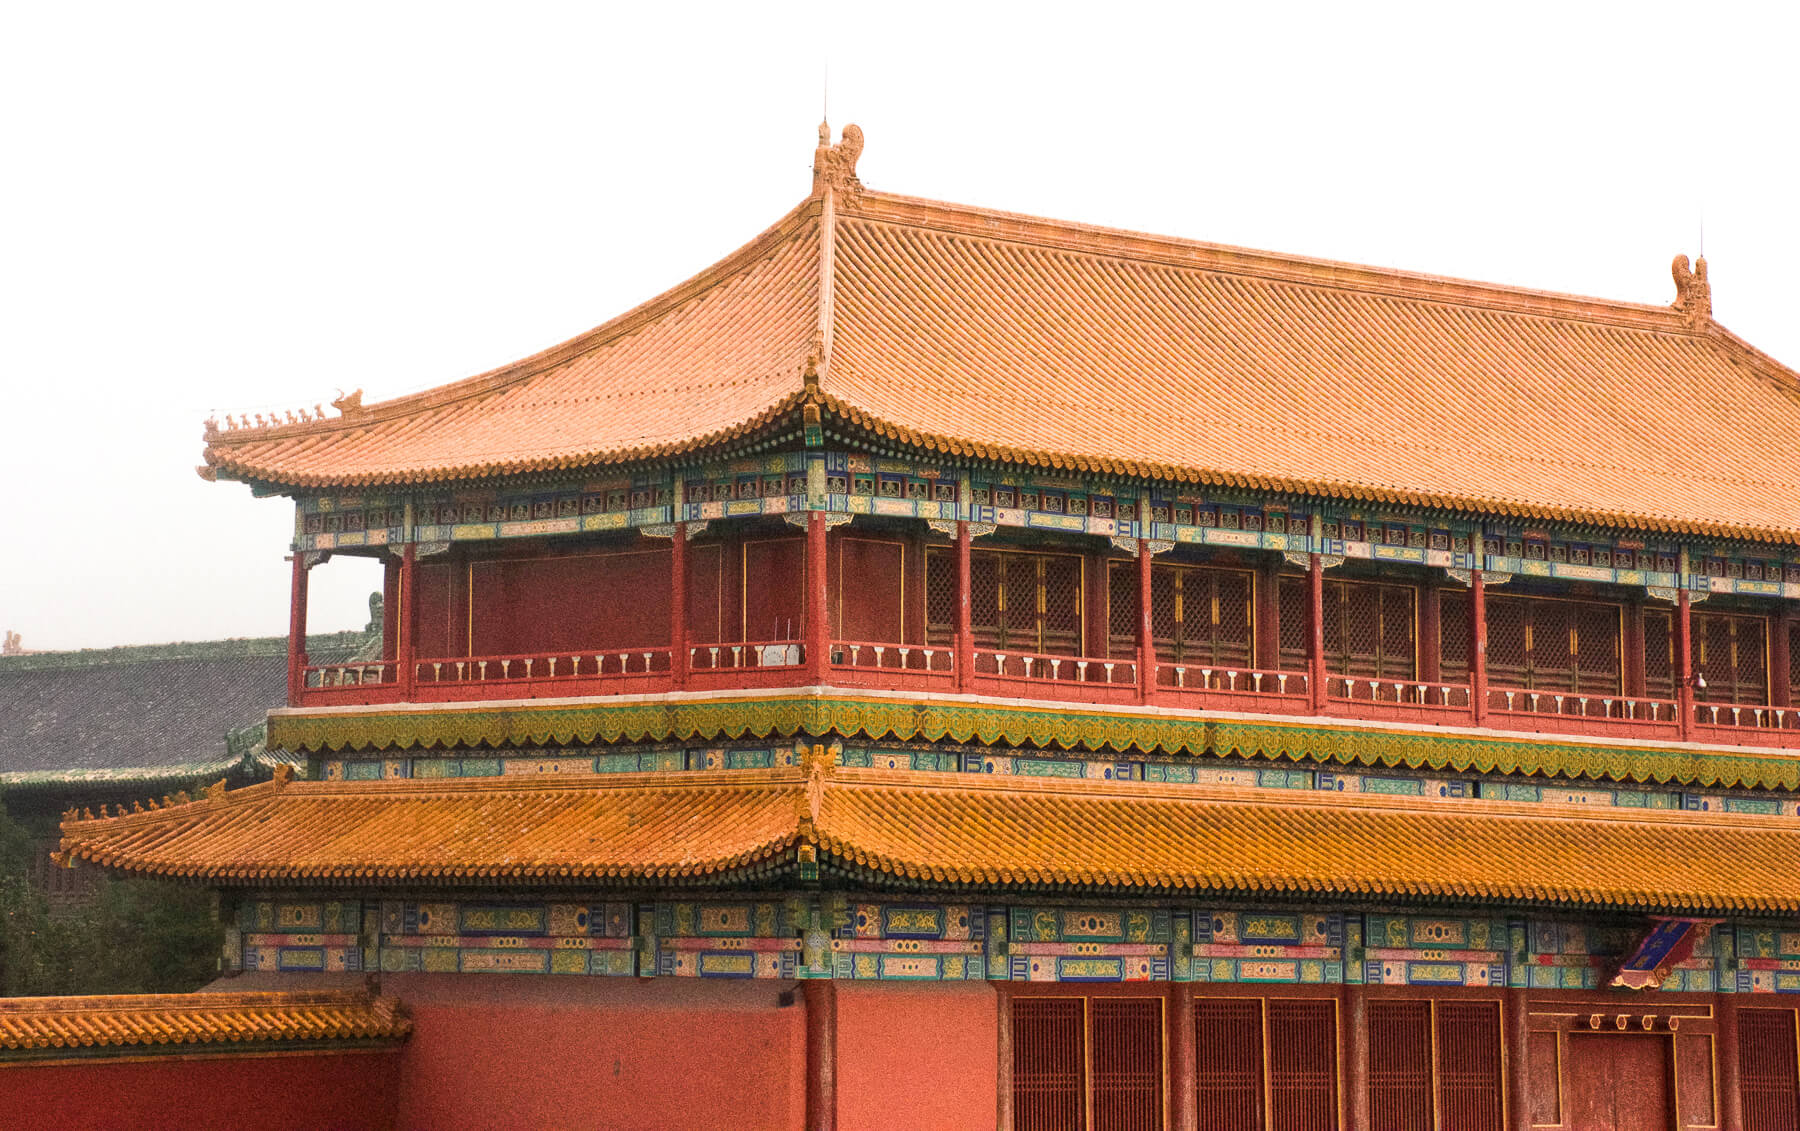 Traditional Chinese Building in the Emperors Palace of the Forbidden City